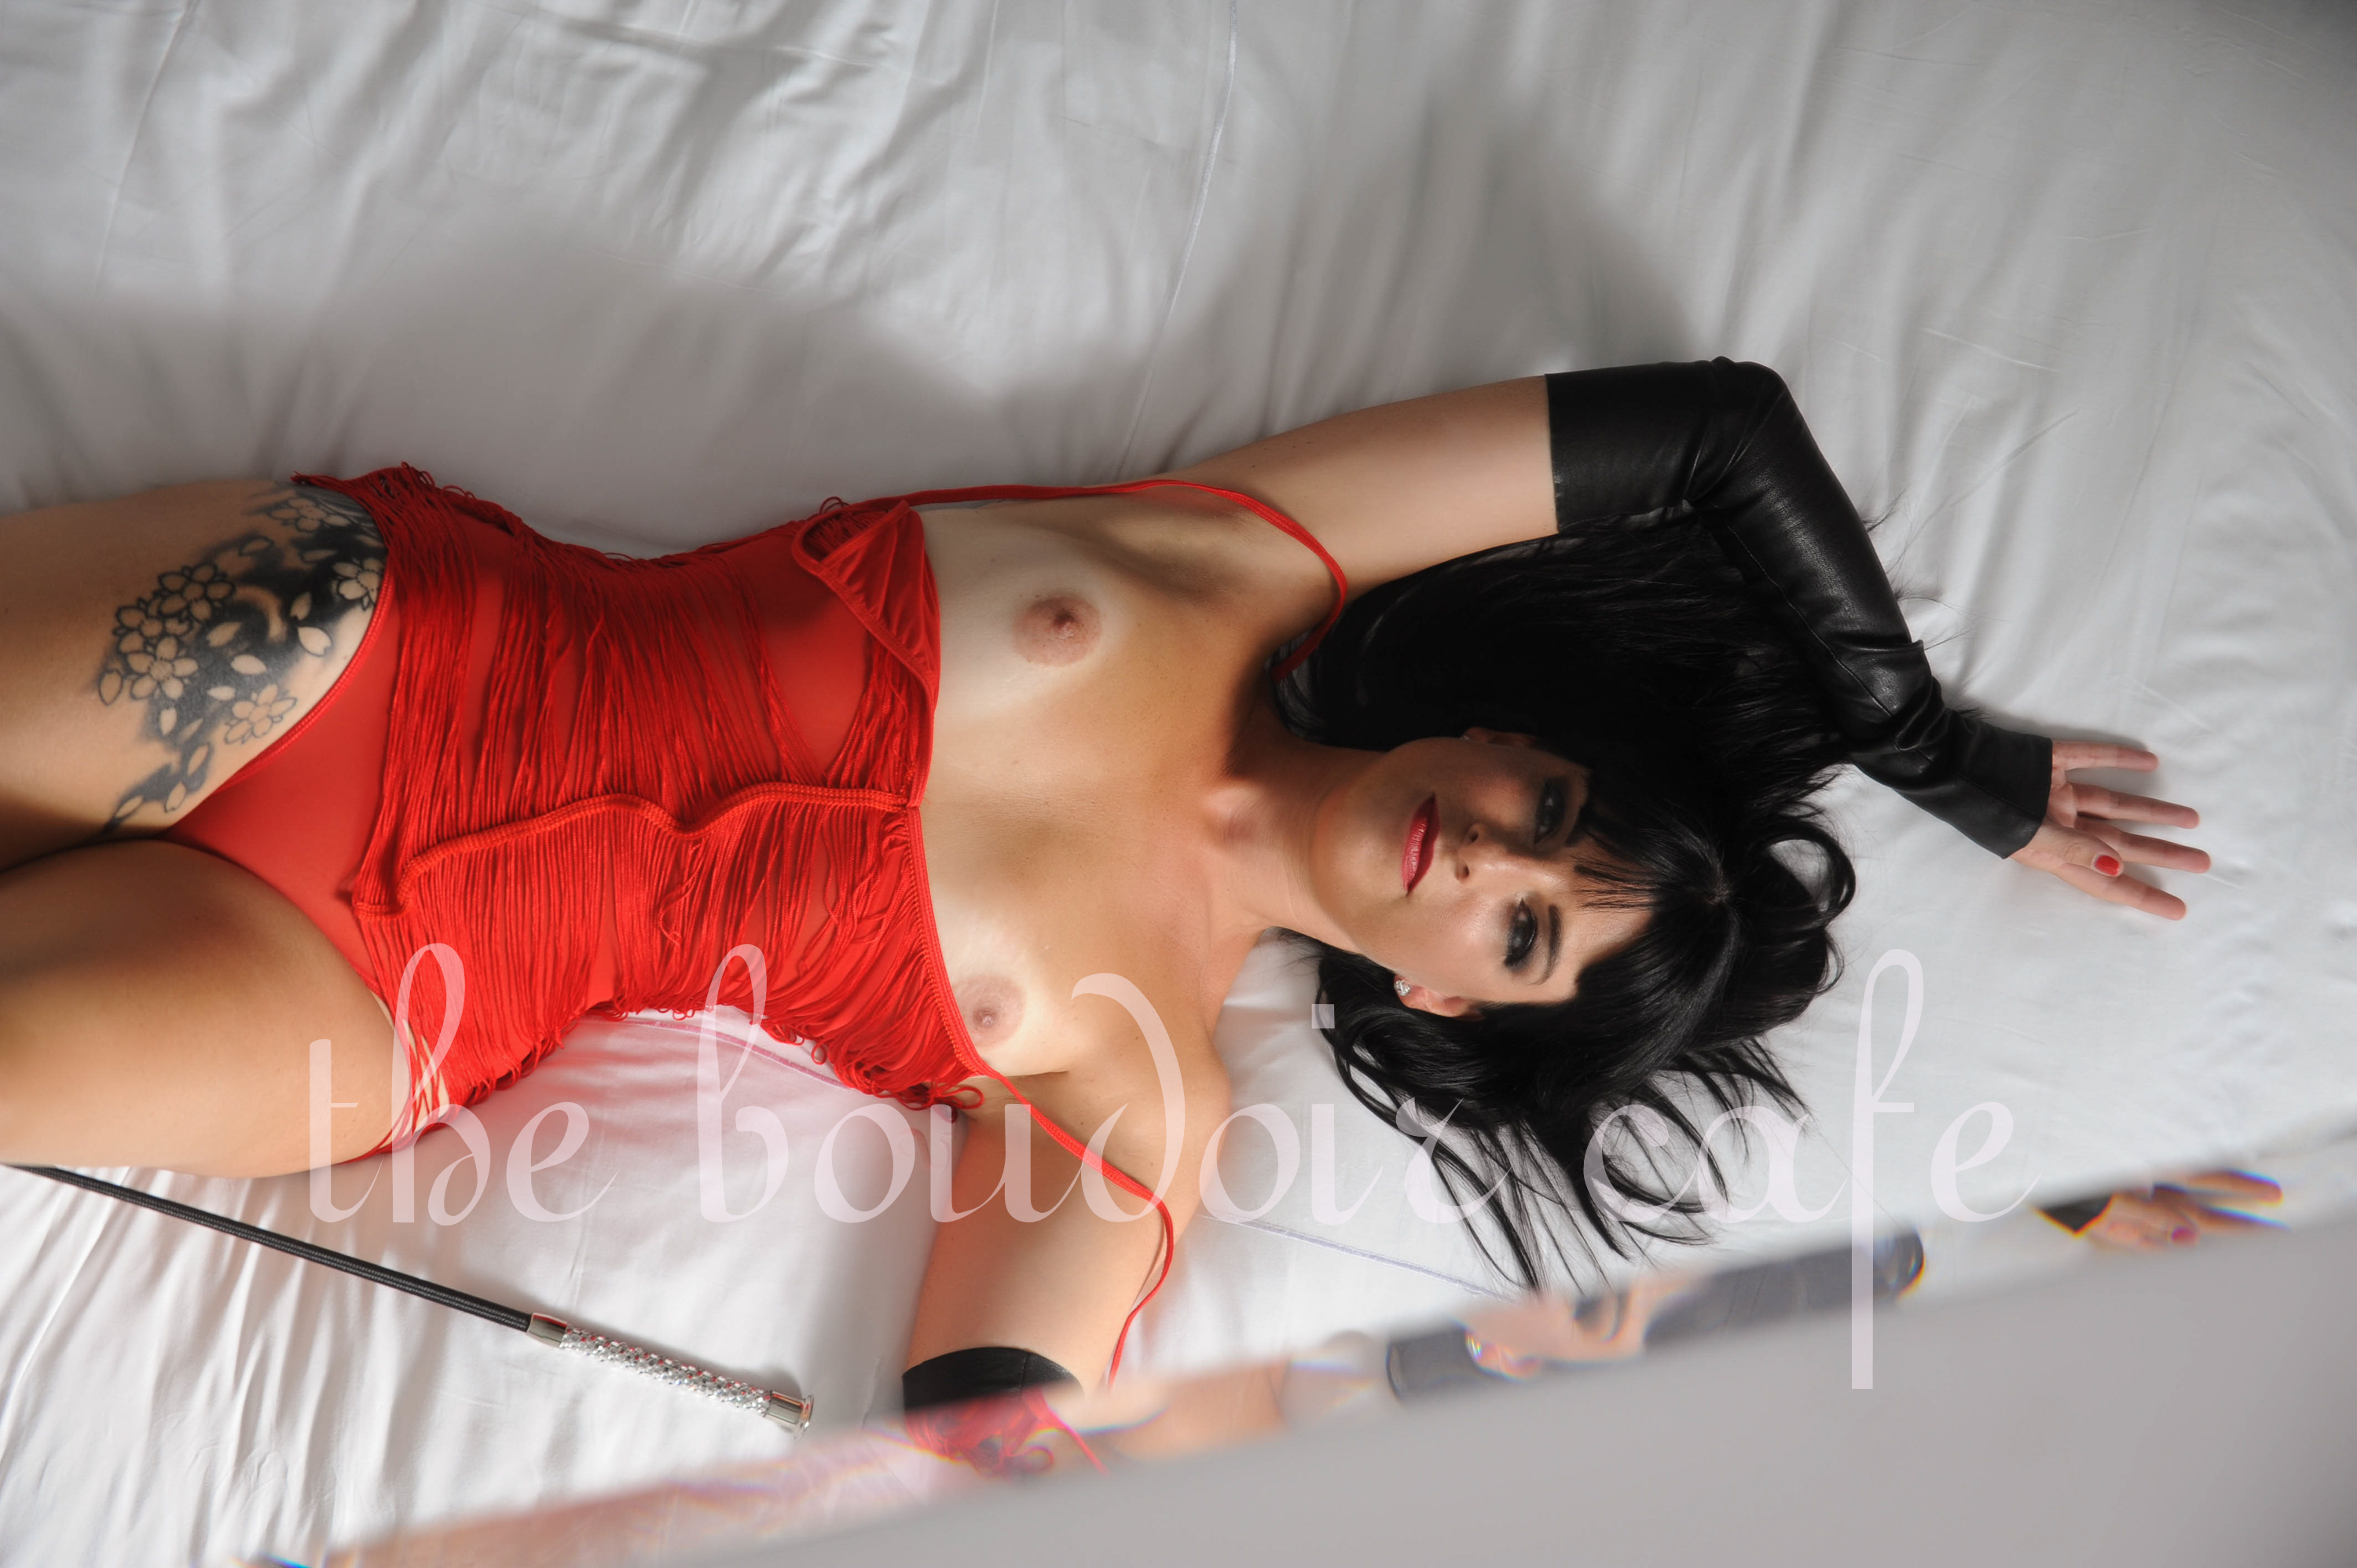 BEST BOUDOIR PHOTOGRAPHERS LOS ANGELES_026